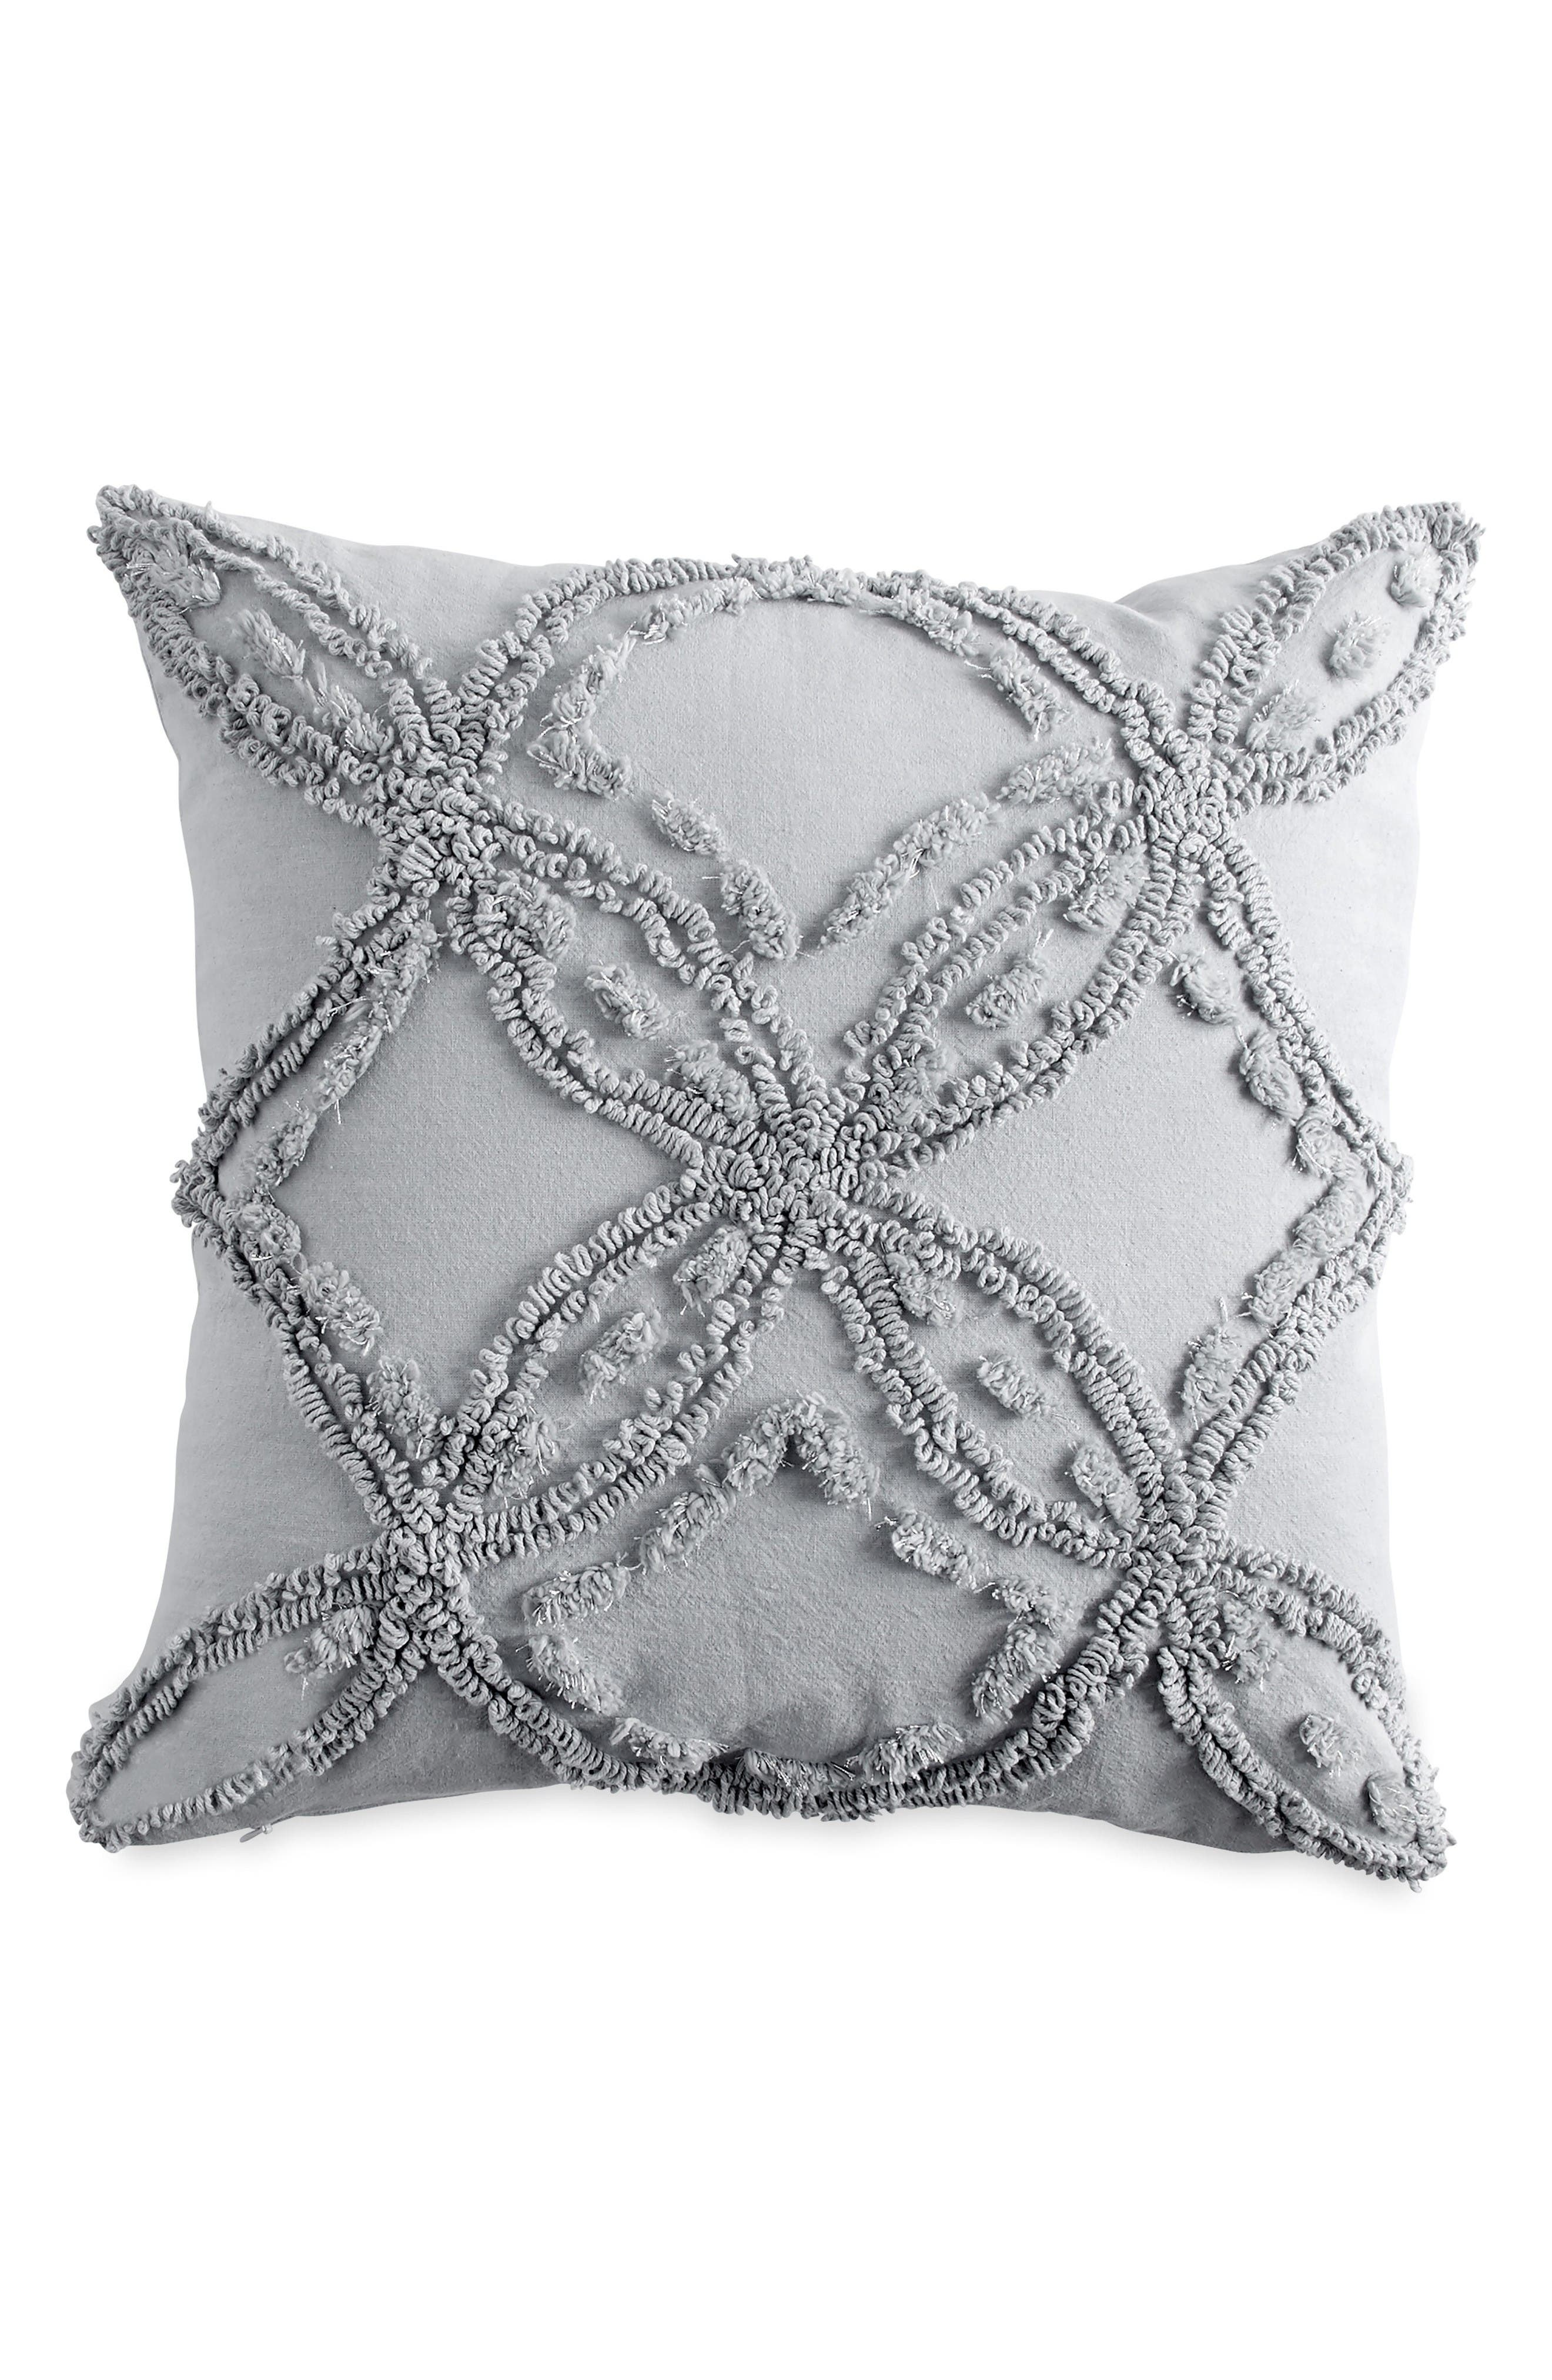 Alternate Image 1 Selected - Peri Home Chenille Pillow